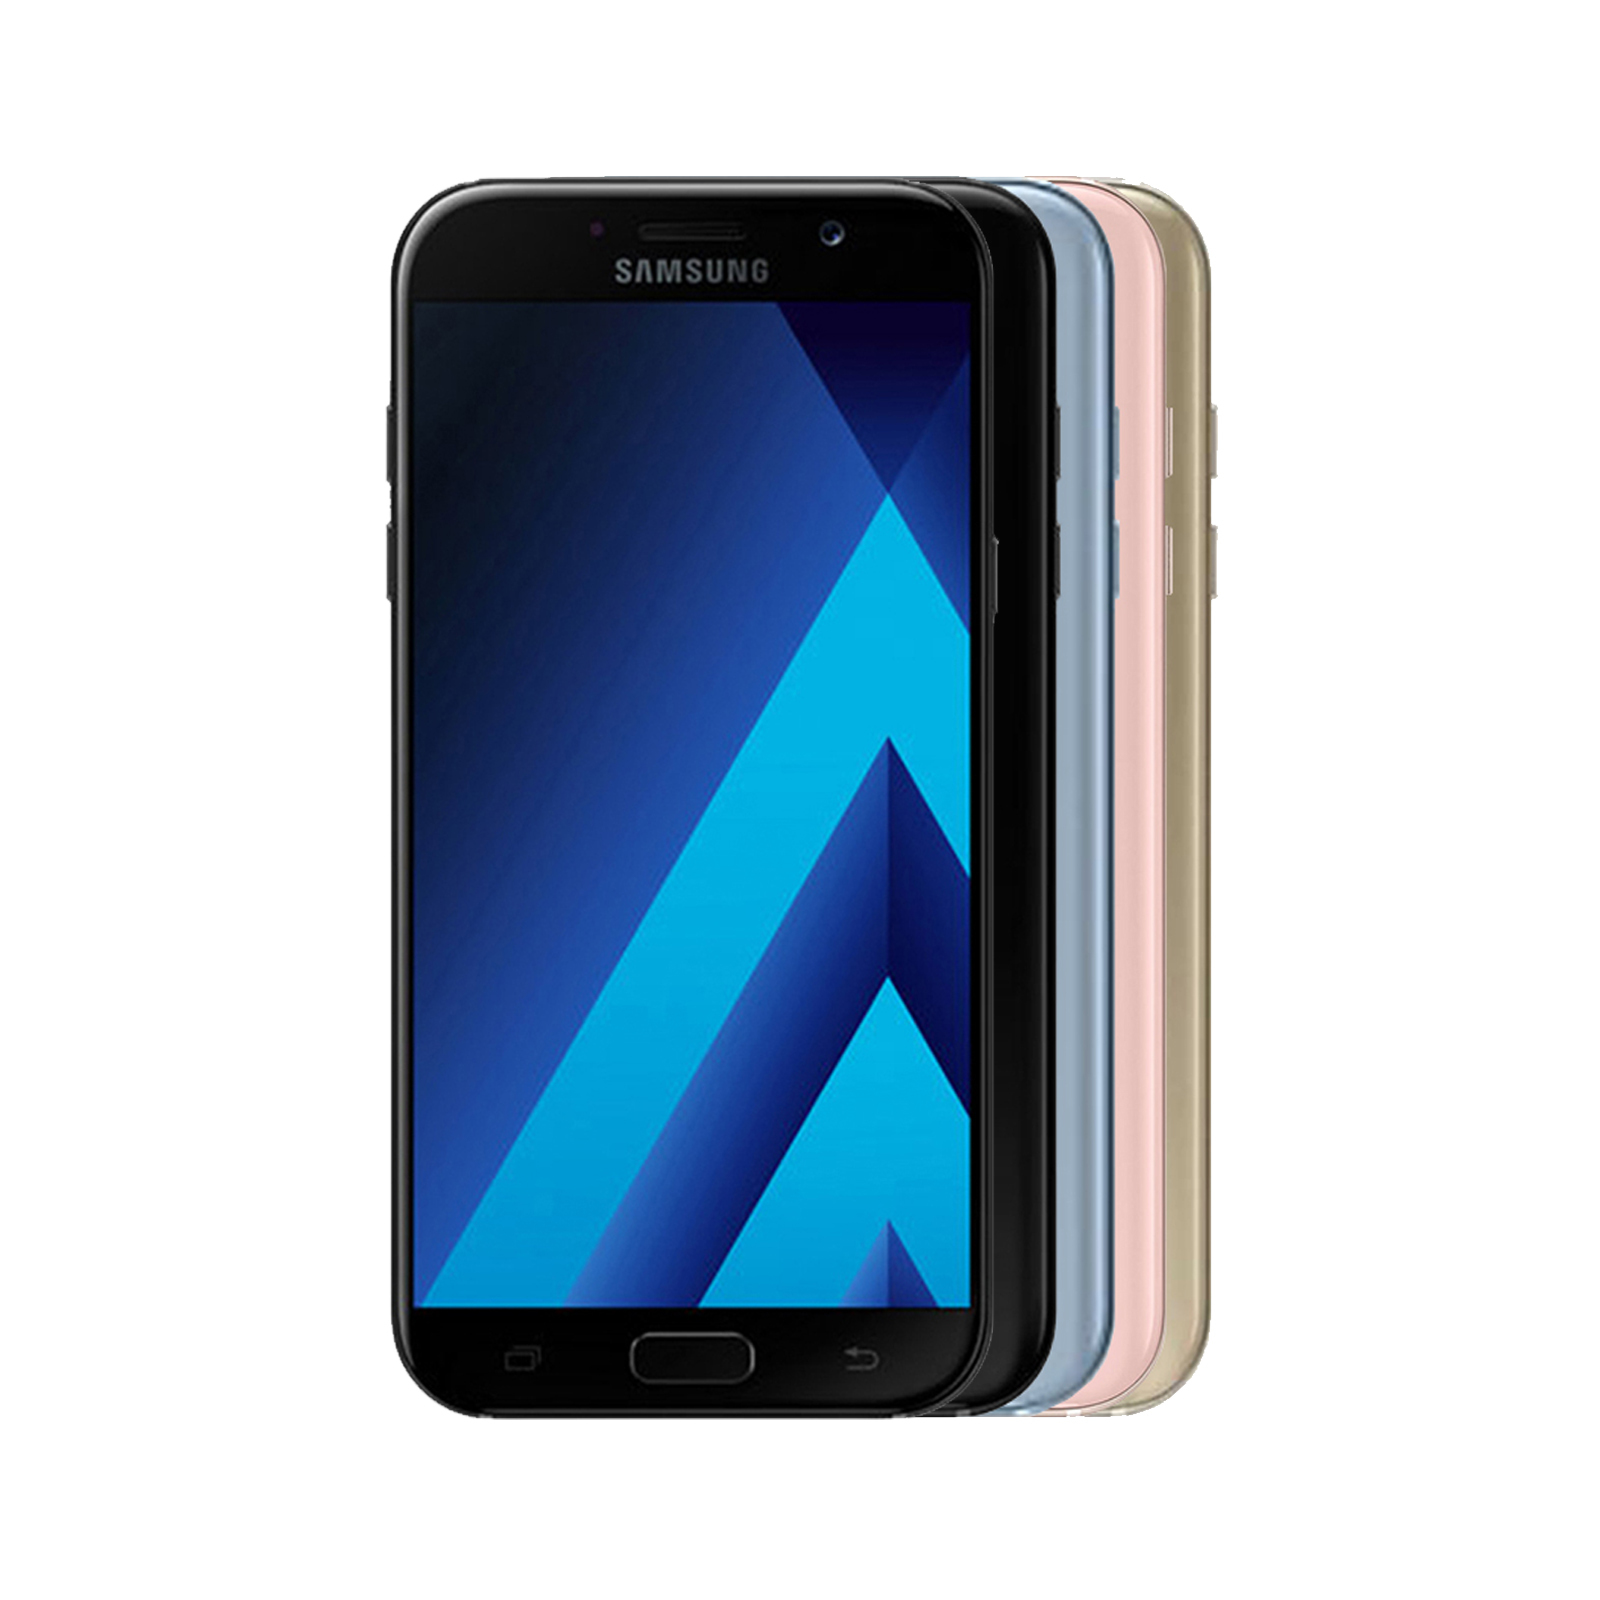 Samsung Galaxy A7 (2017) - As New